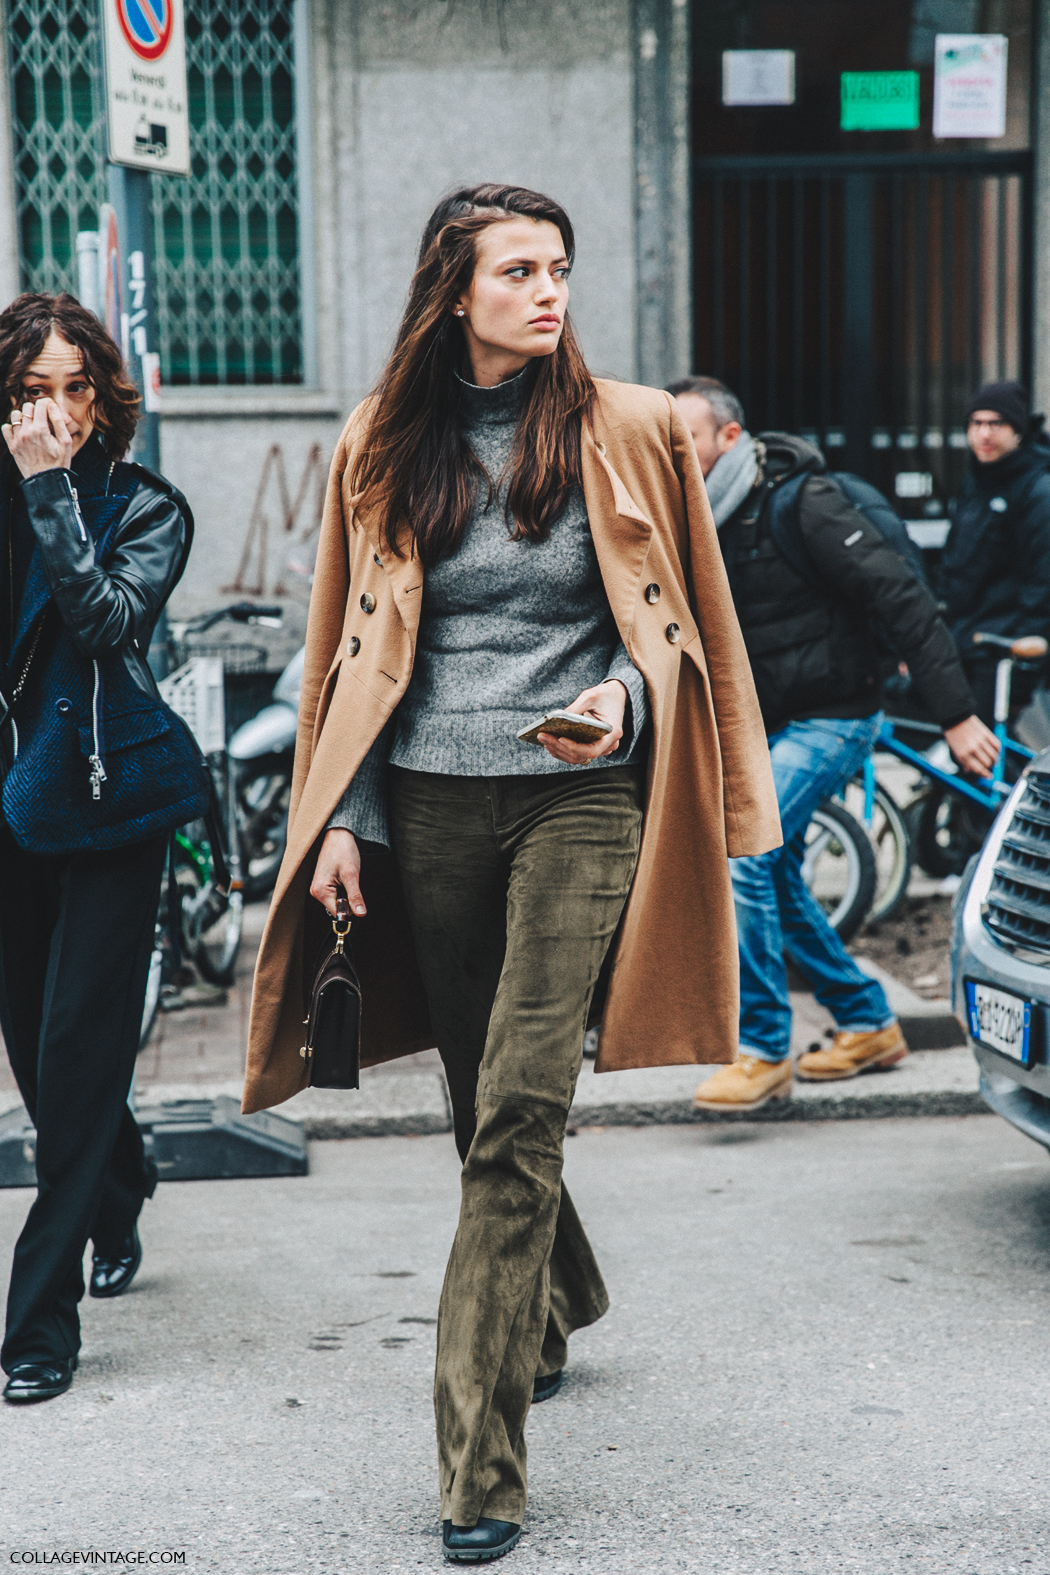 Street Style | Week From Fashion Week | 2016 : 15 Images of Inspiration 818019